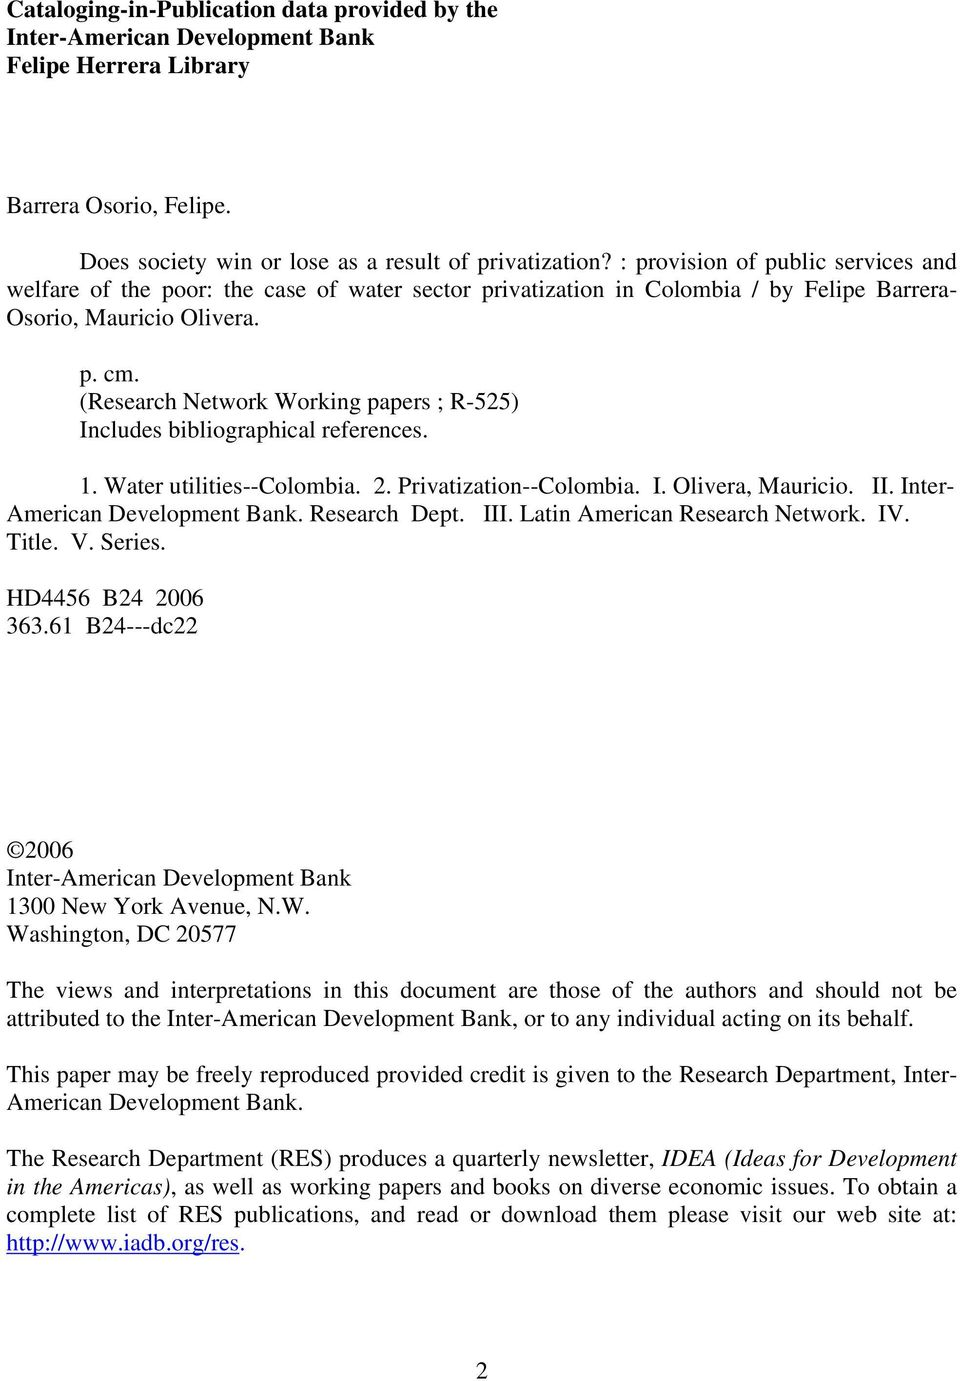 (Research Network Working papers ; R-525) Includes bibliographical references. 1. Water utilities--colombia. 2. Privatization--Colombia. I. Olivera, Mauricio. II. Inter- American Development Bank.